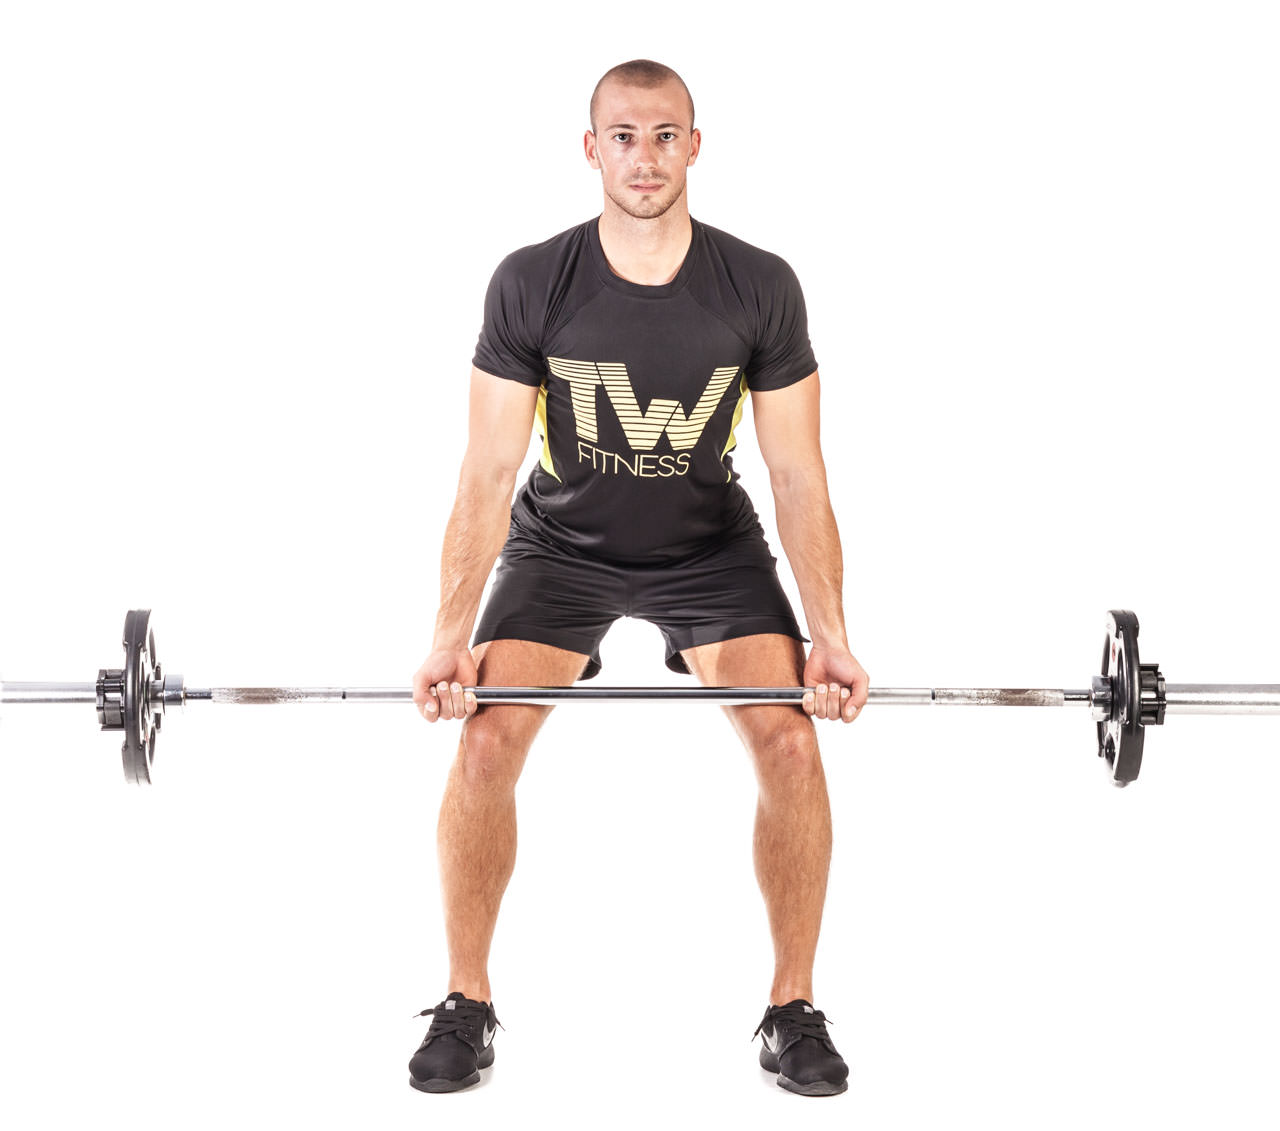 Barbell Bent Over Row (Reverse Grip) frame #1